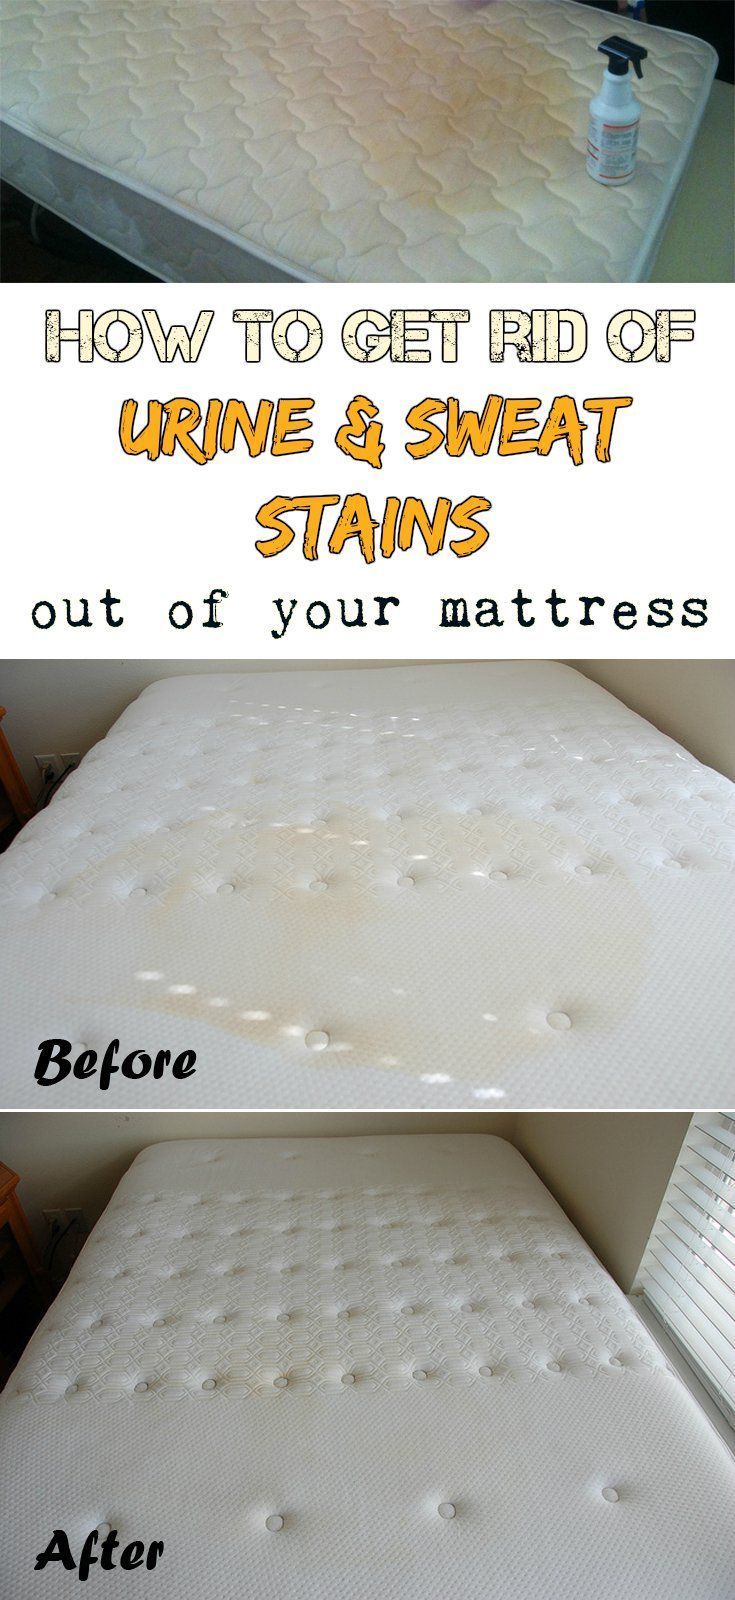 DIY Miracle Mattress Stain Remover Household Cleaning Tips and